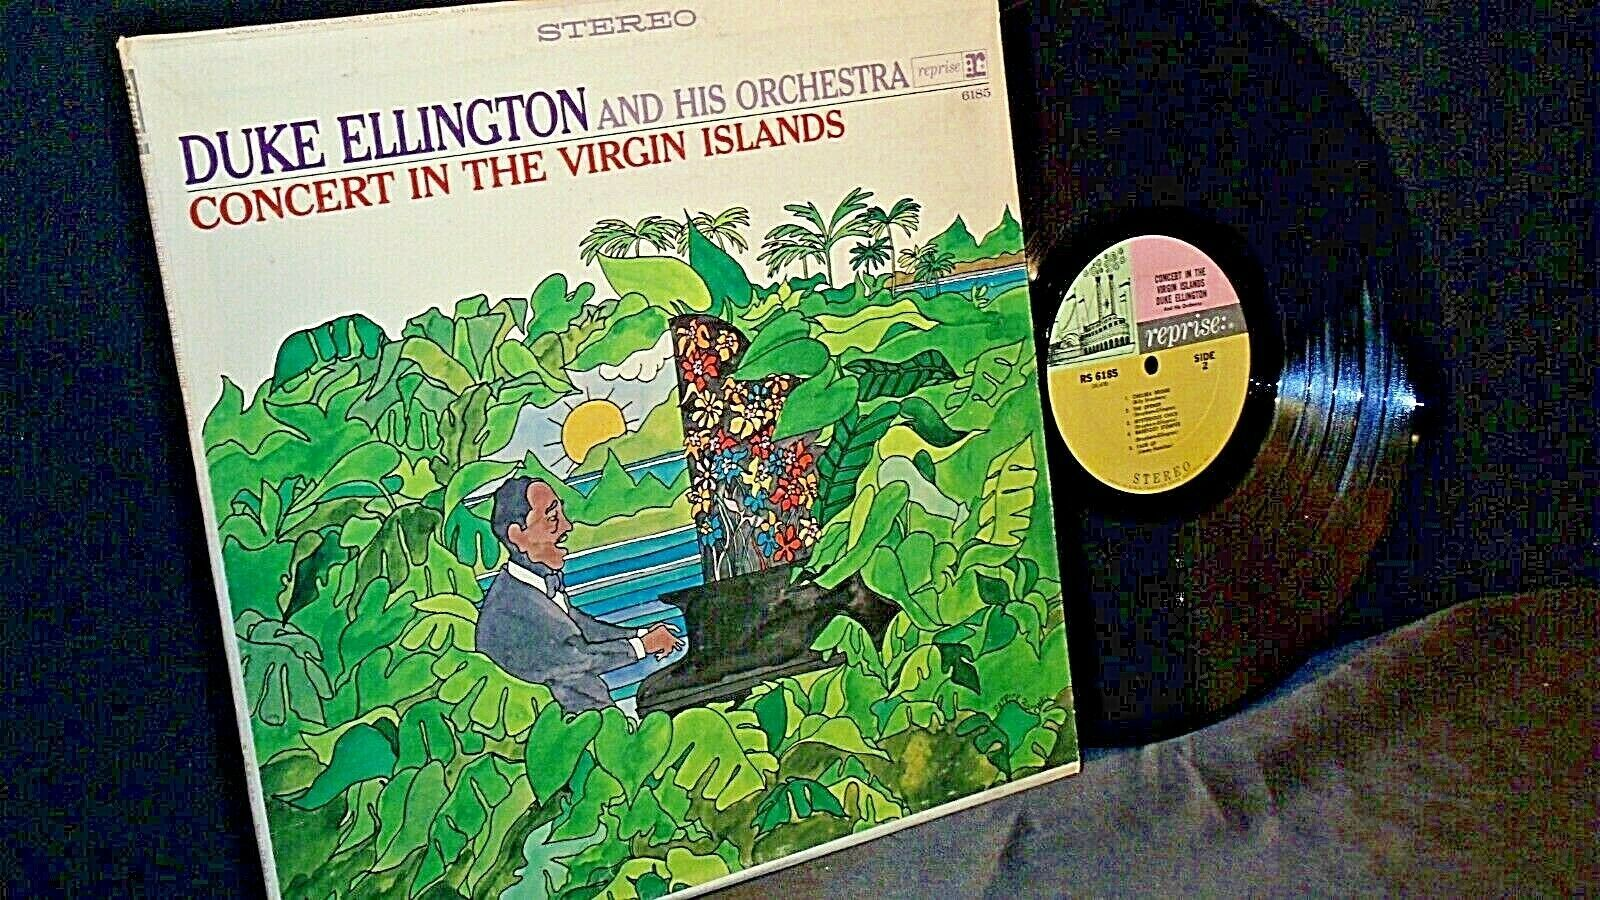 Concert In The Virgin Islands - Duke Ellington And His Orchestra  AA20-RC2101 Vi